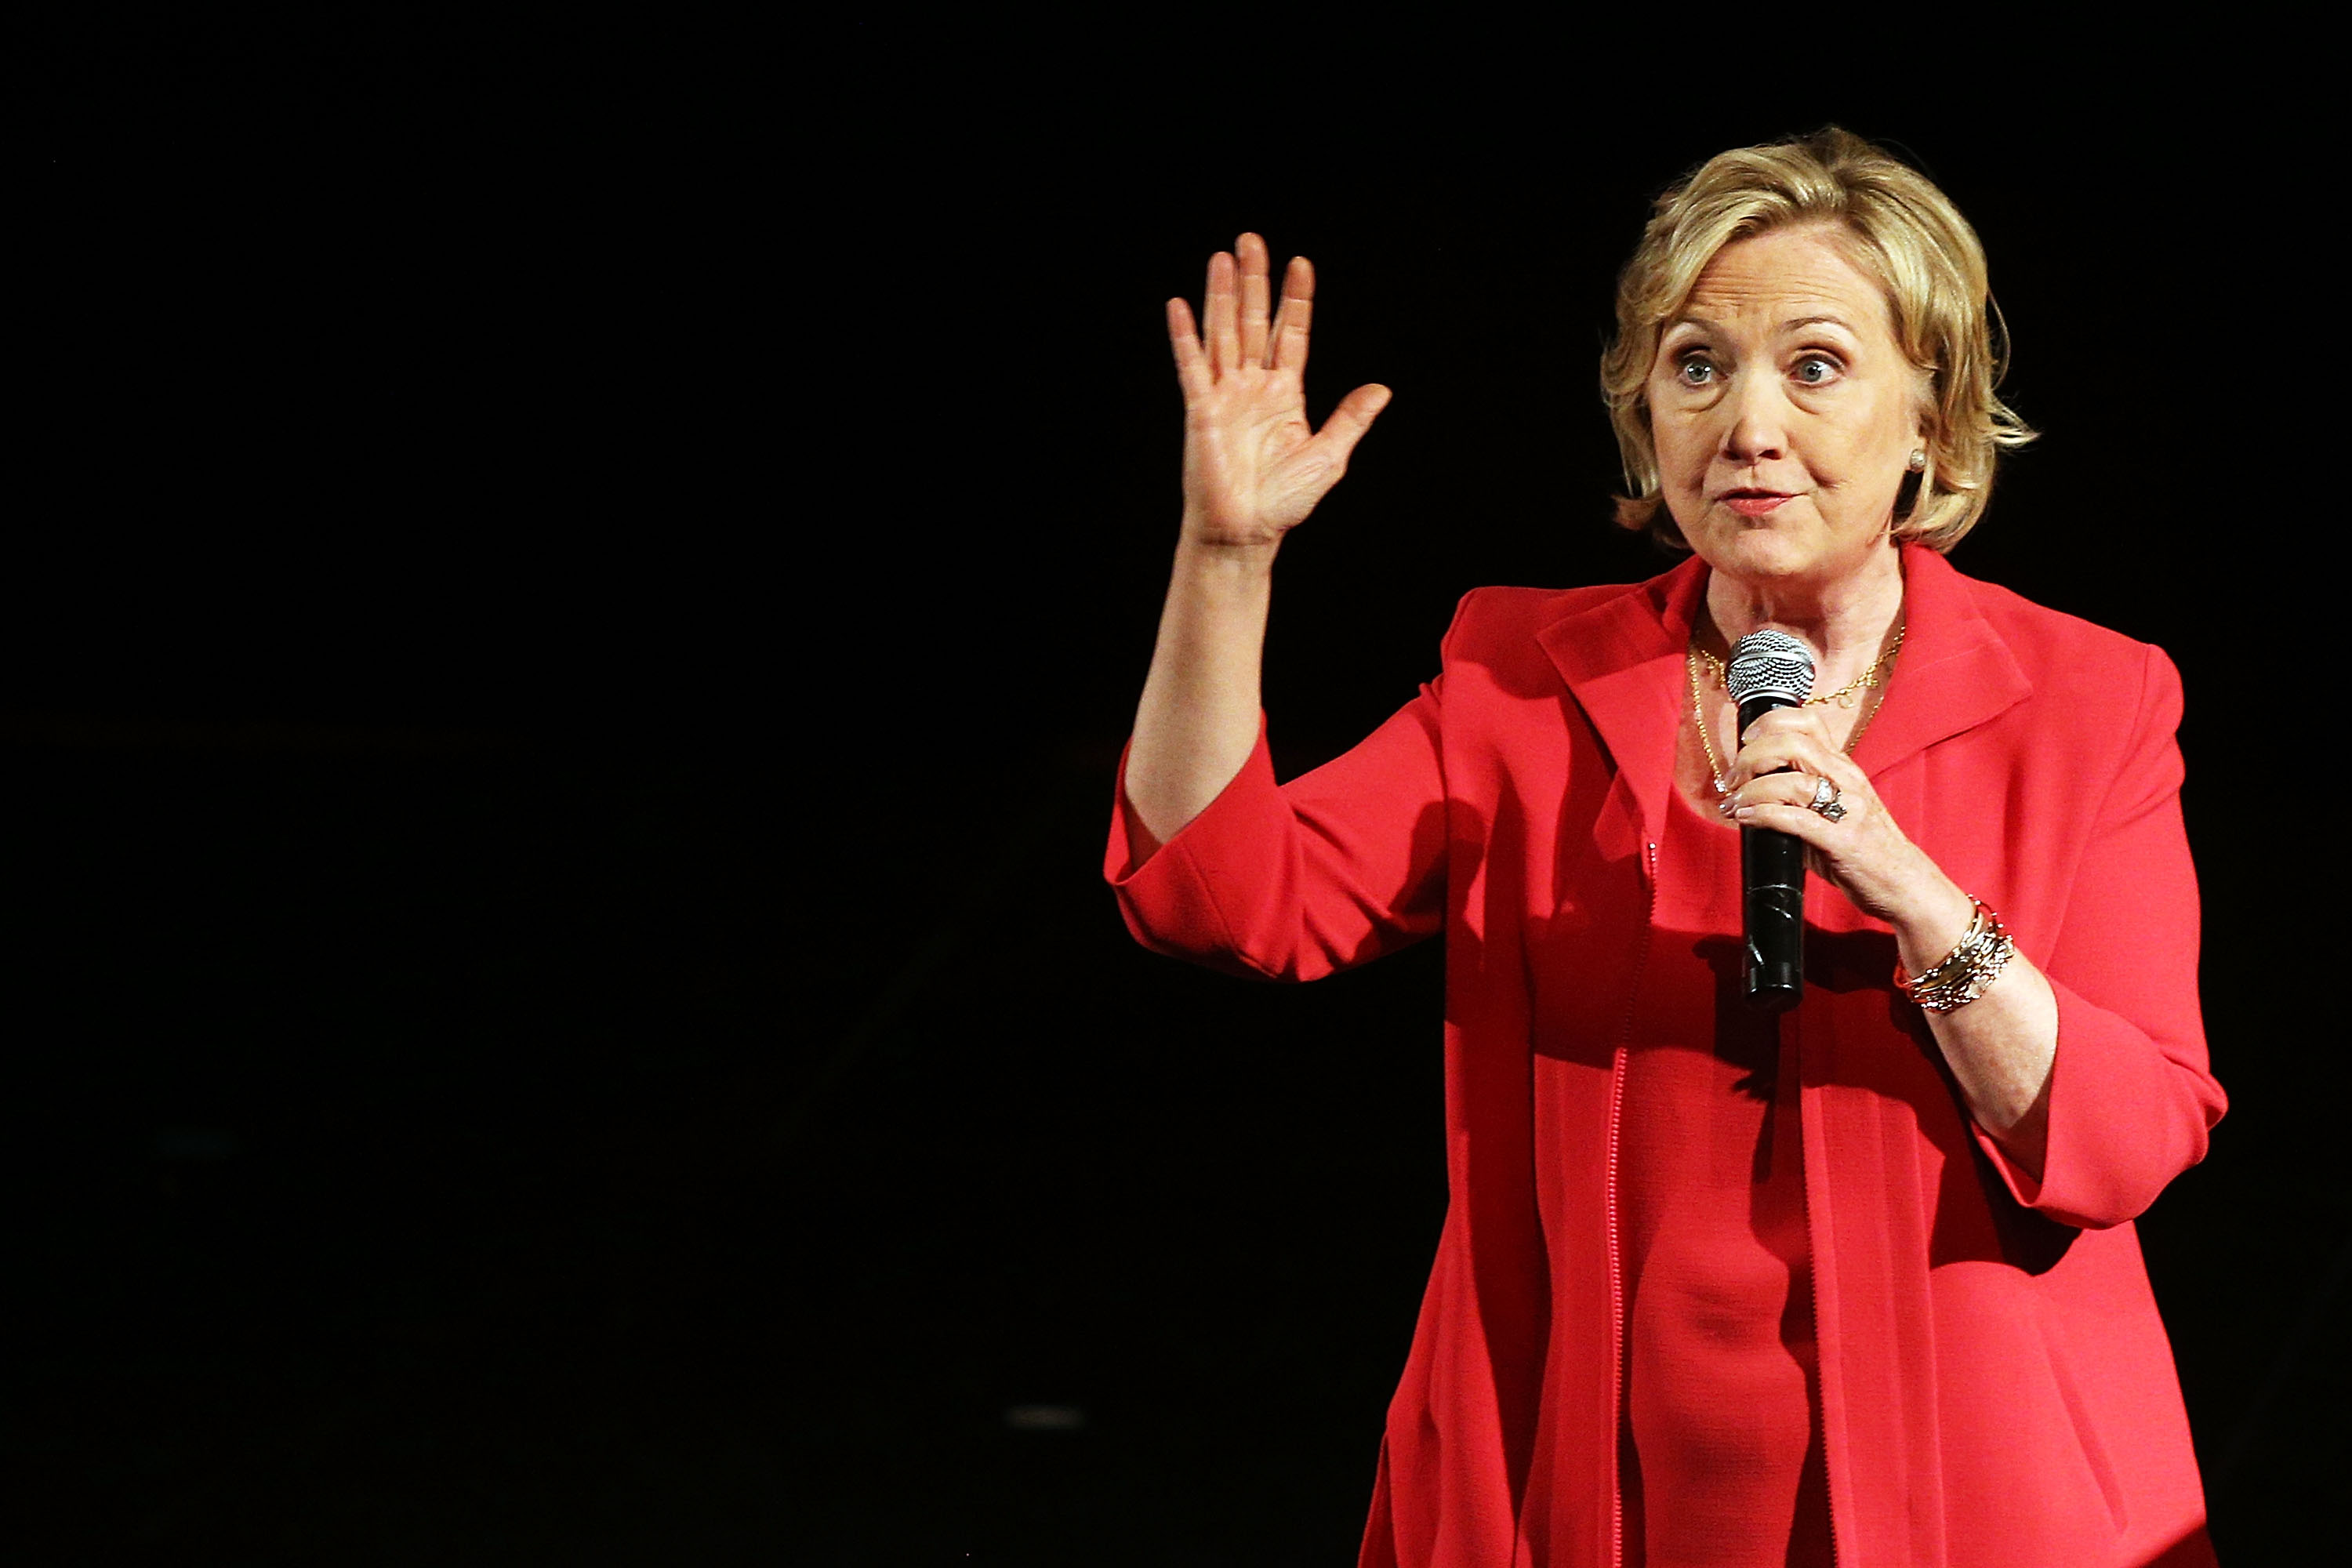 Former Secretary of State Hillary Clinton speaks on stage at the campus of Lehman College for the Dream Big Day at the Bronx Children's Museum on July 25, 2014 in the Bronx New York.